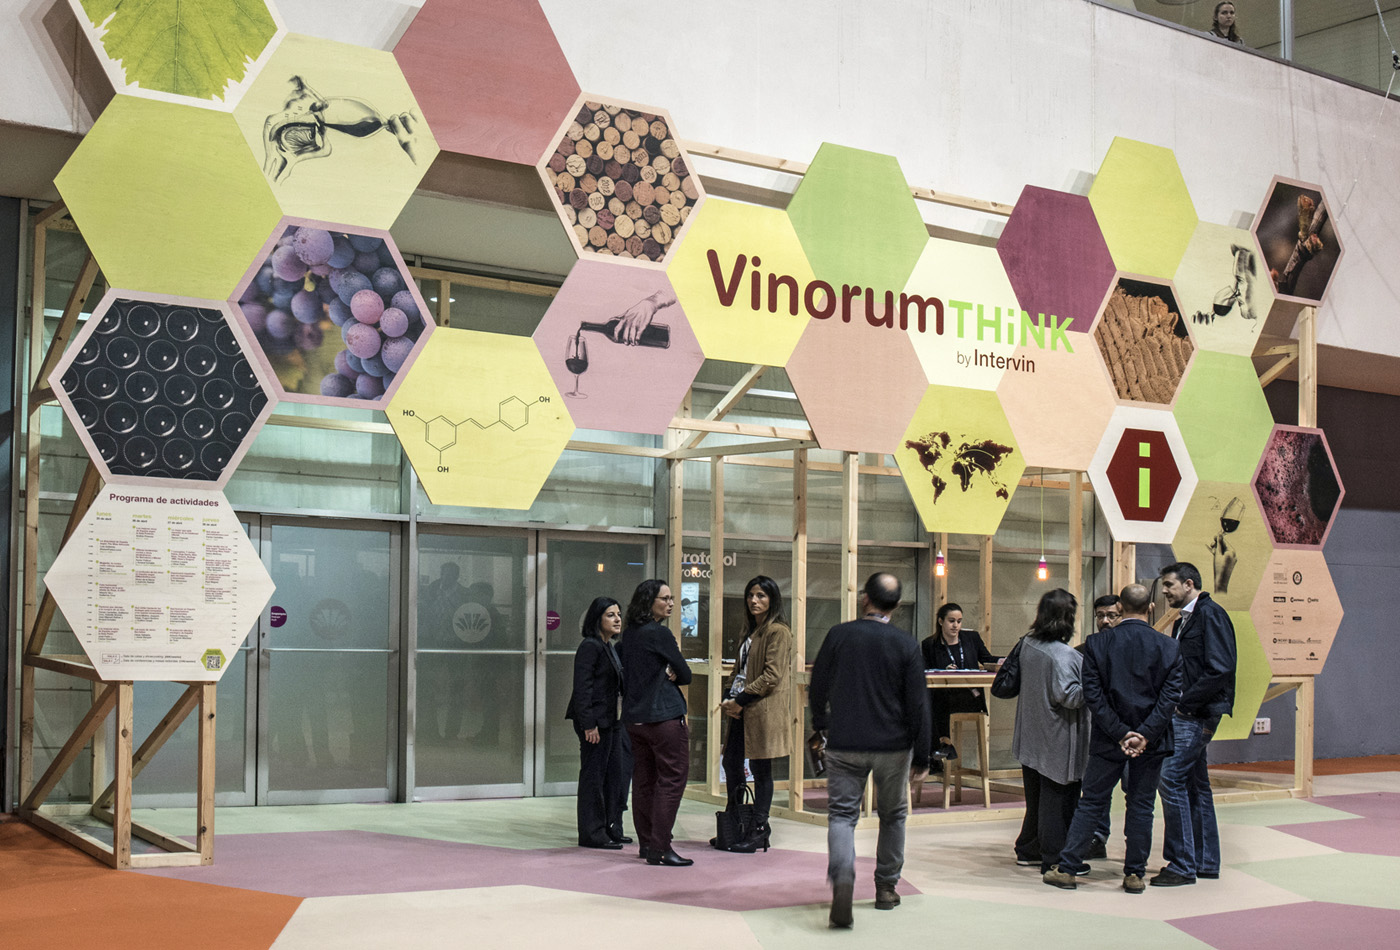 entrada-vinorum-think-creartiva-the-alimentaria-experience